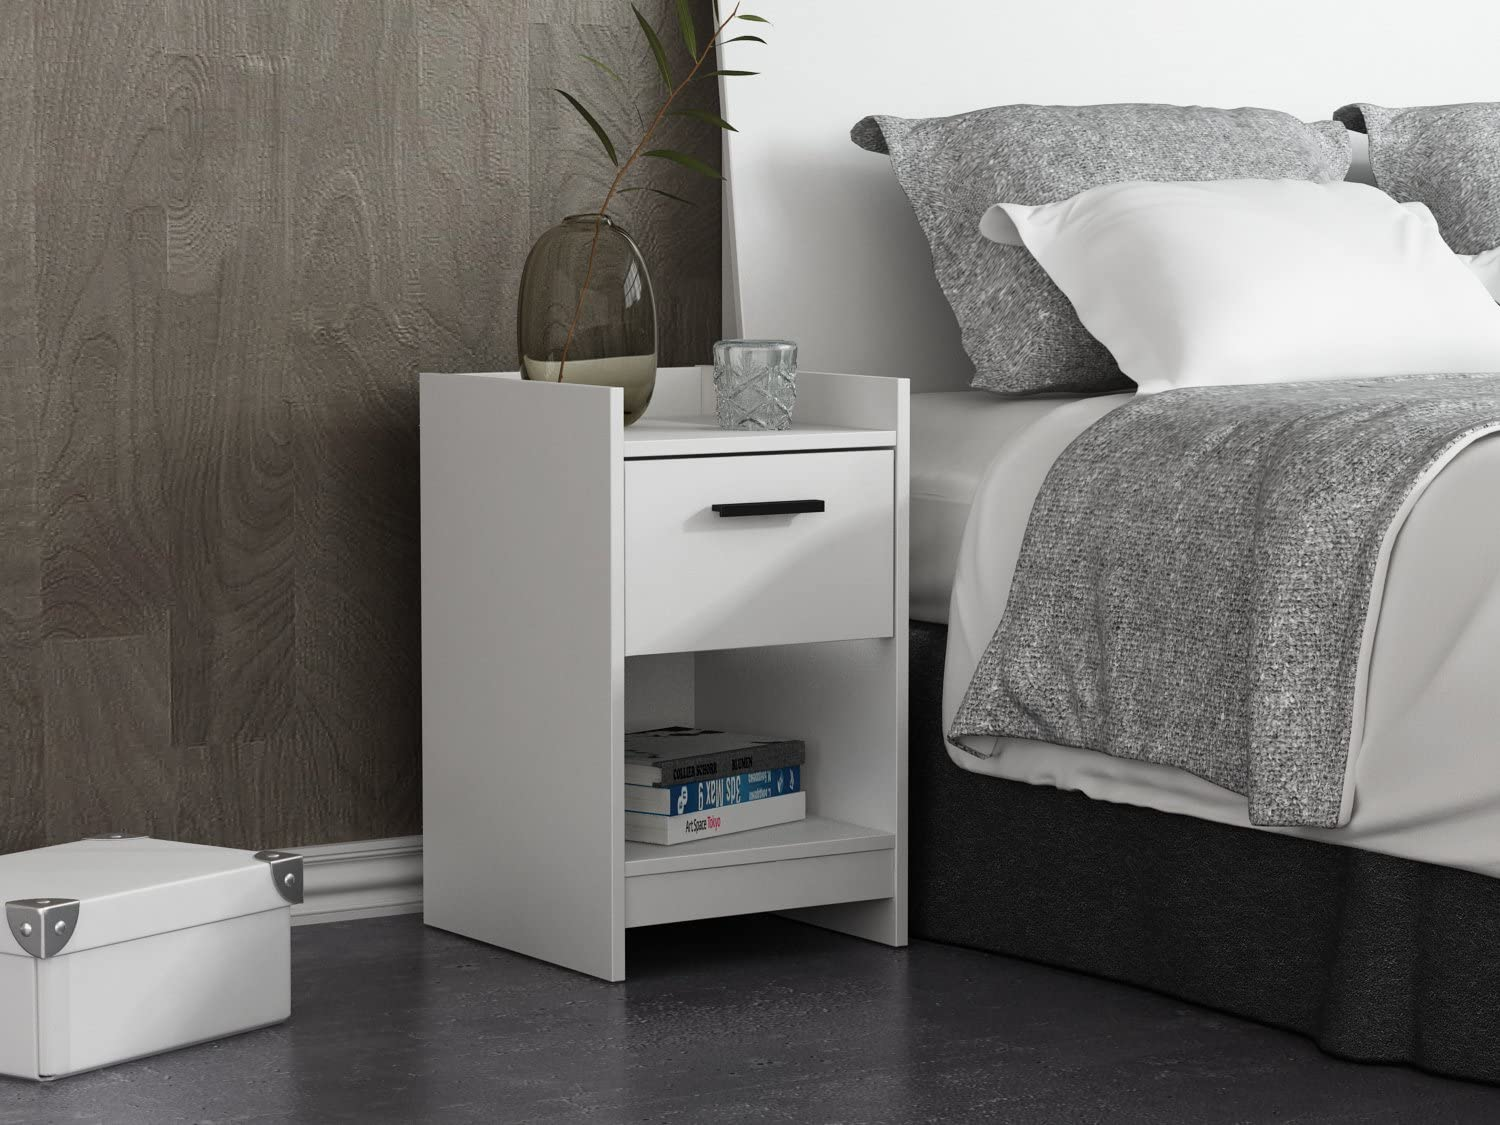 HOMESTAR Central Park Night Stand, 15.98 x 13.7 x 22.44, Frost White